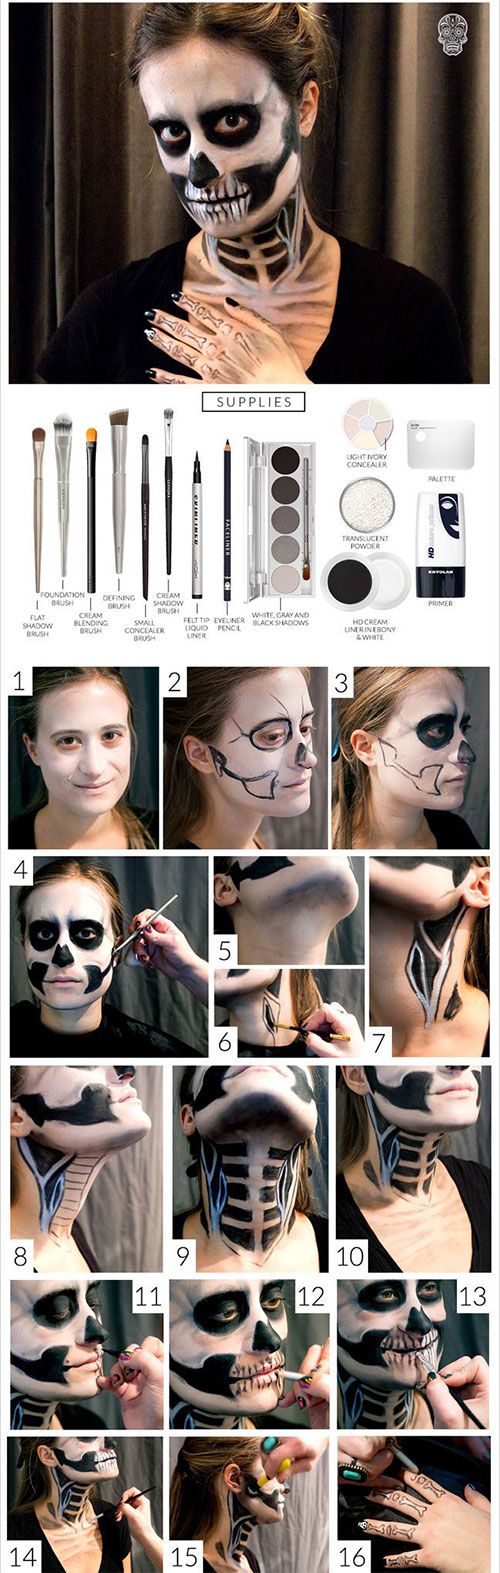 15-Best-Easy-Halloween-Makeup-Tutorials-For-Beginners-Learners-2015-12